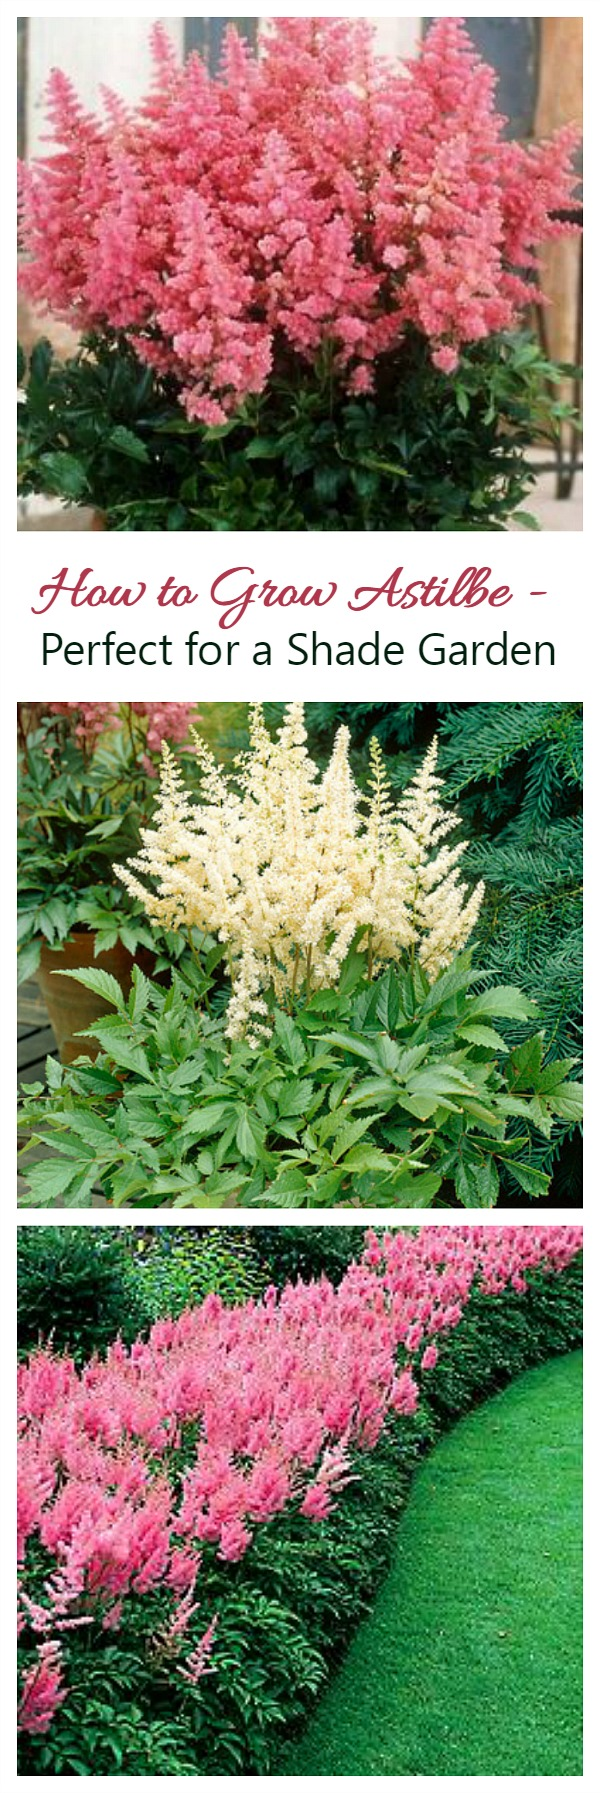 Growing Astilbe False Spirea How To Grow And Care For Astilbe